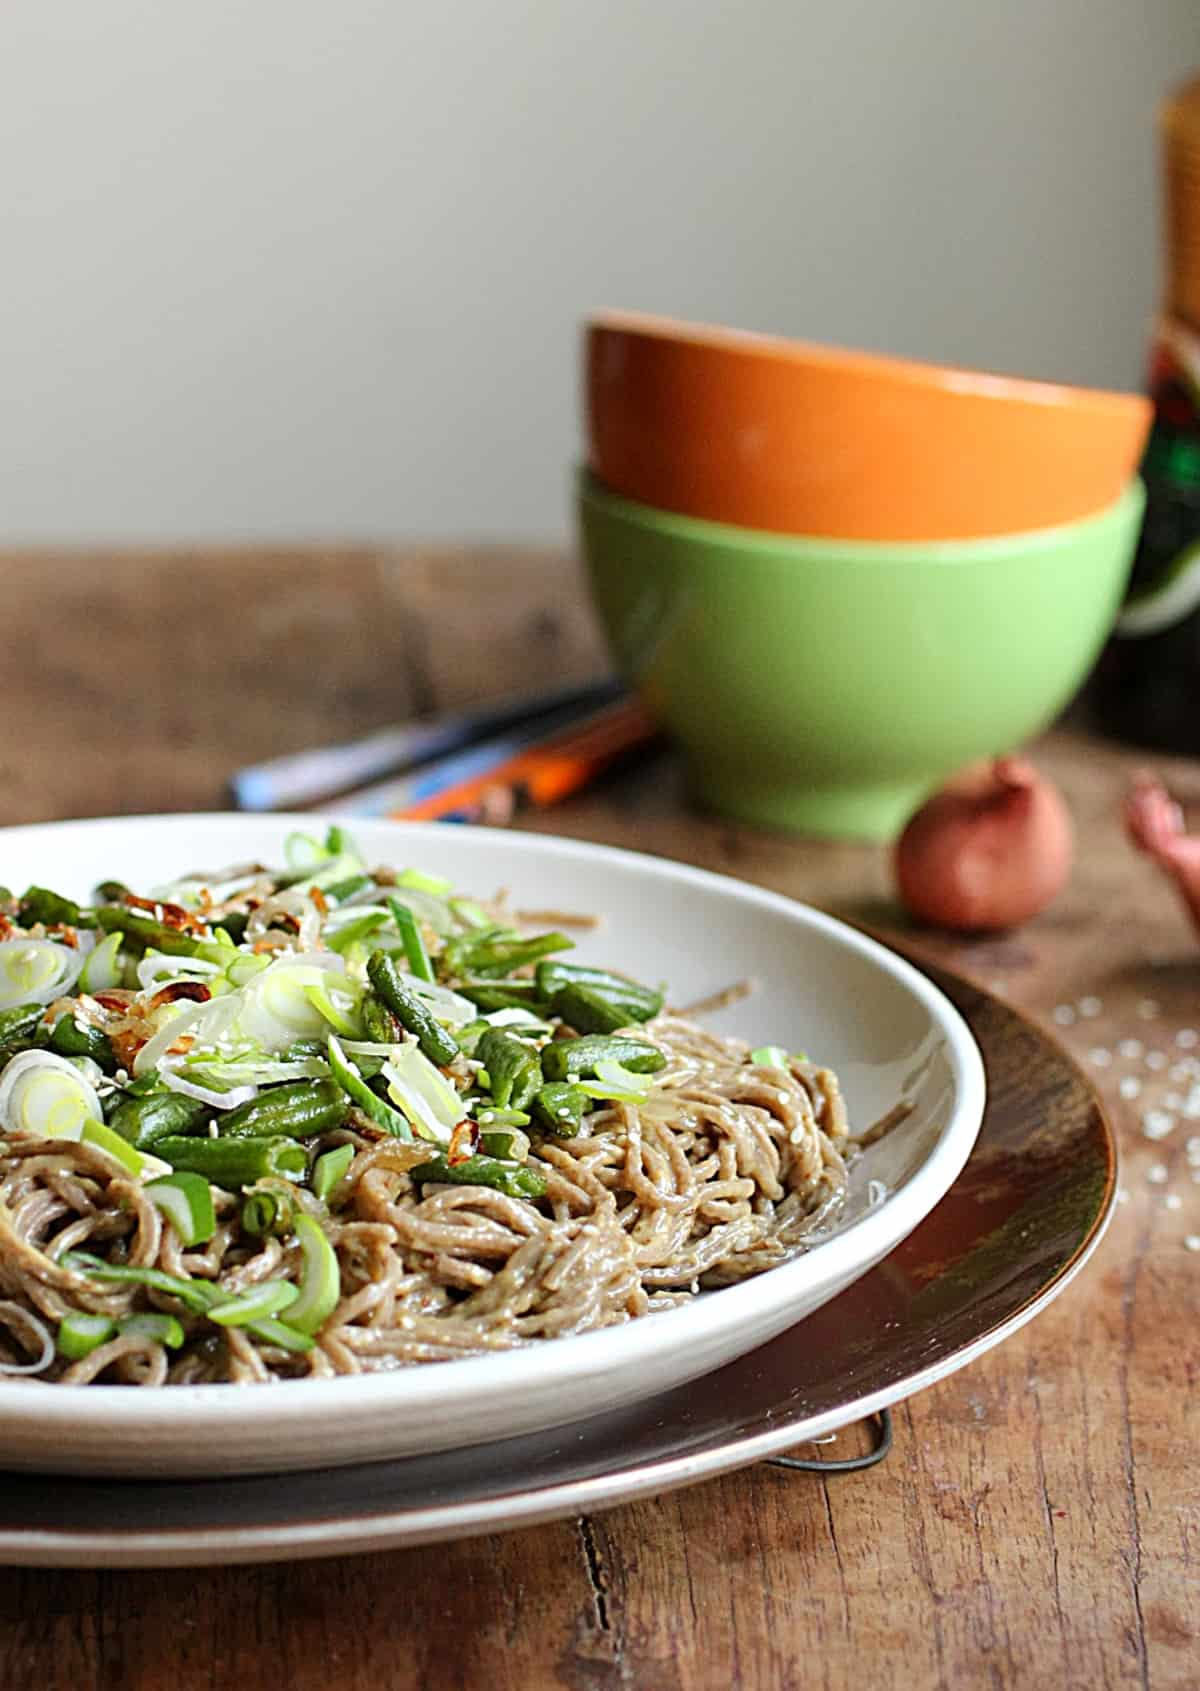 White plate with noodle salad with green beans, wooden table, colorful bowls in background